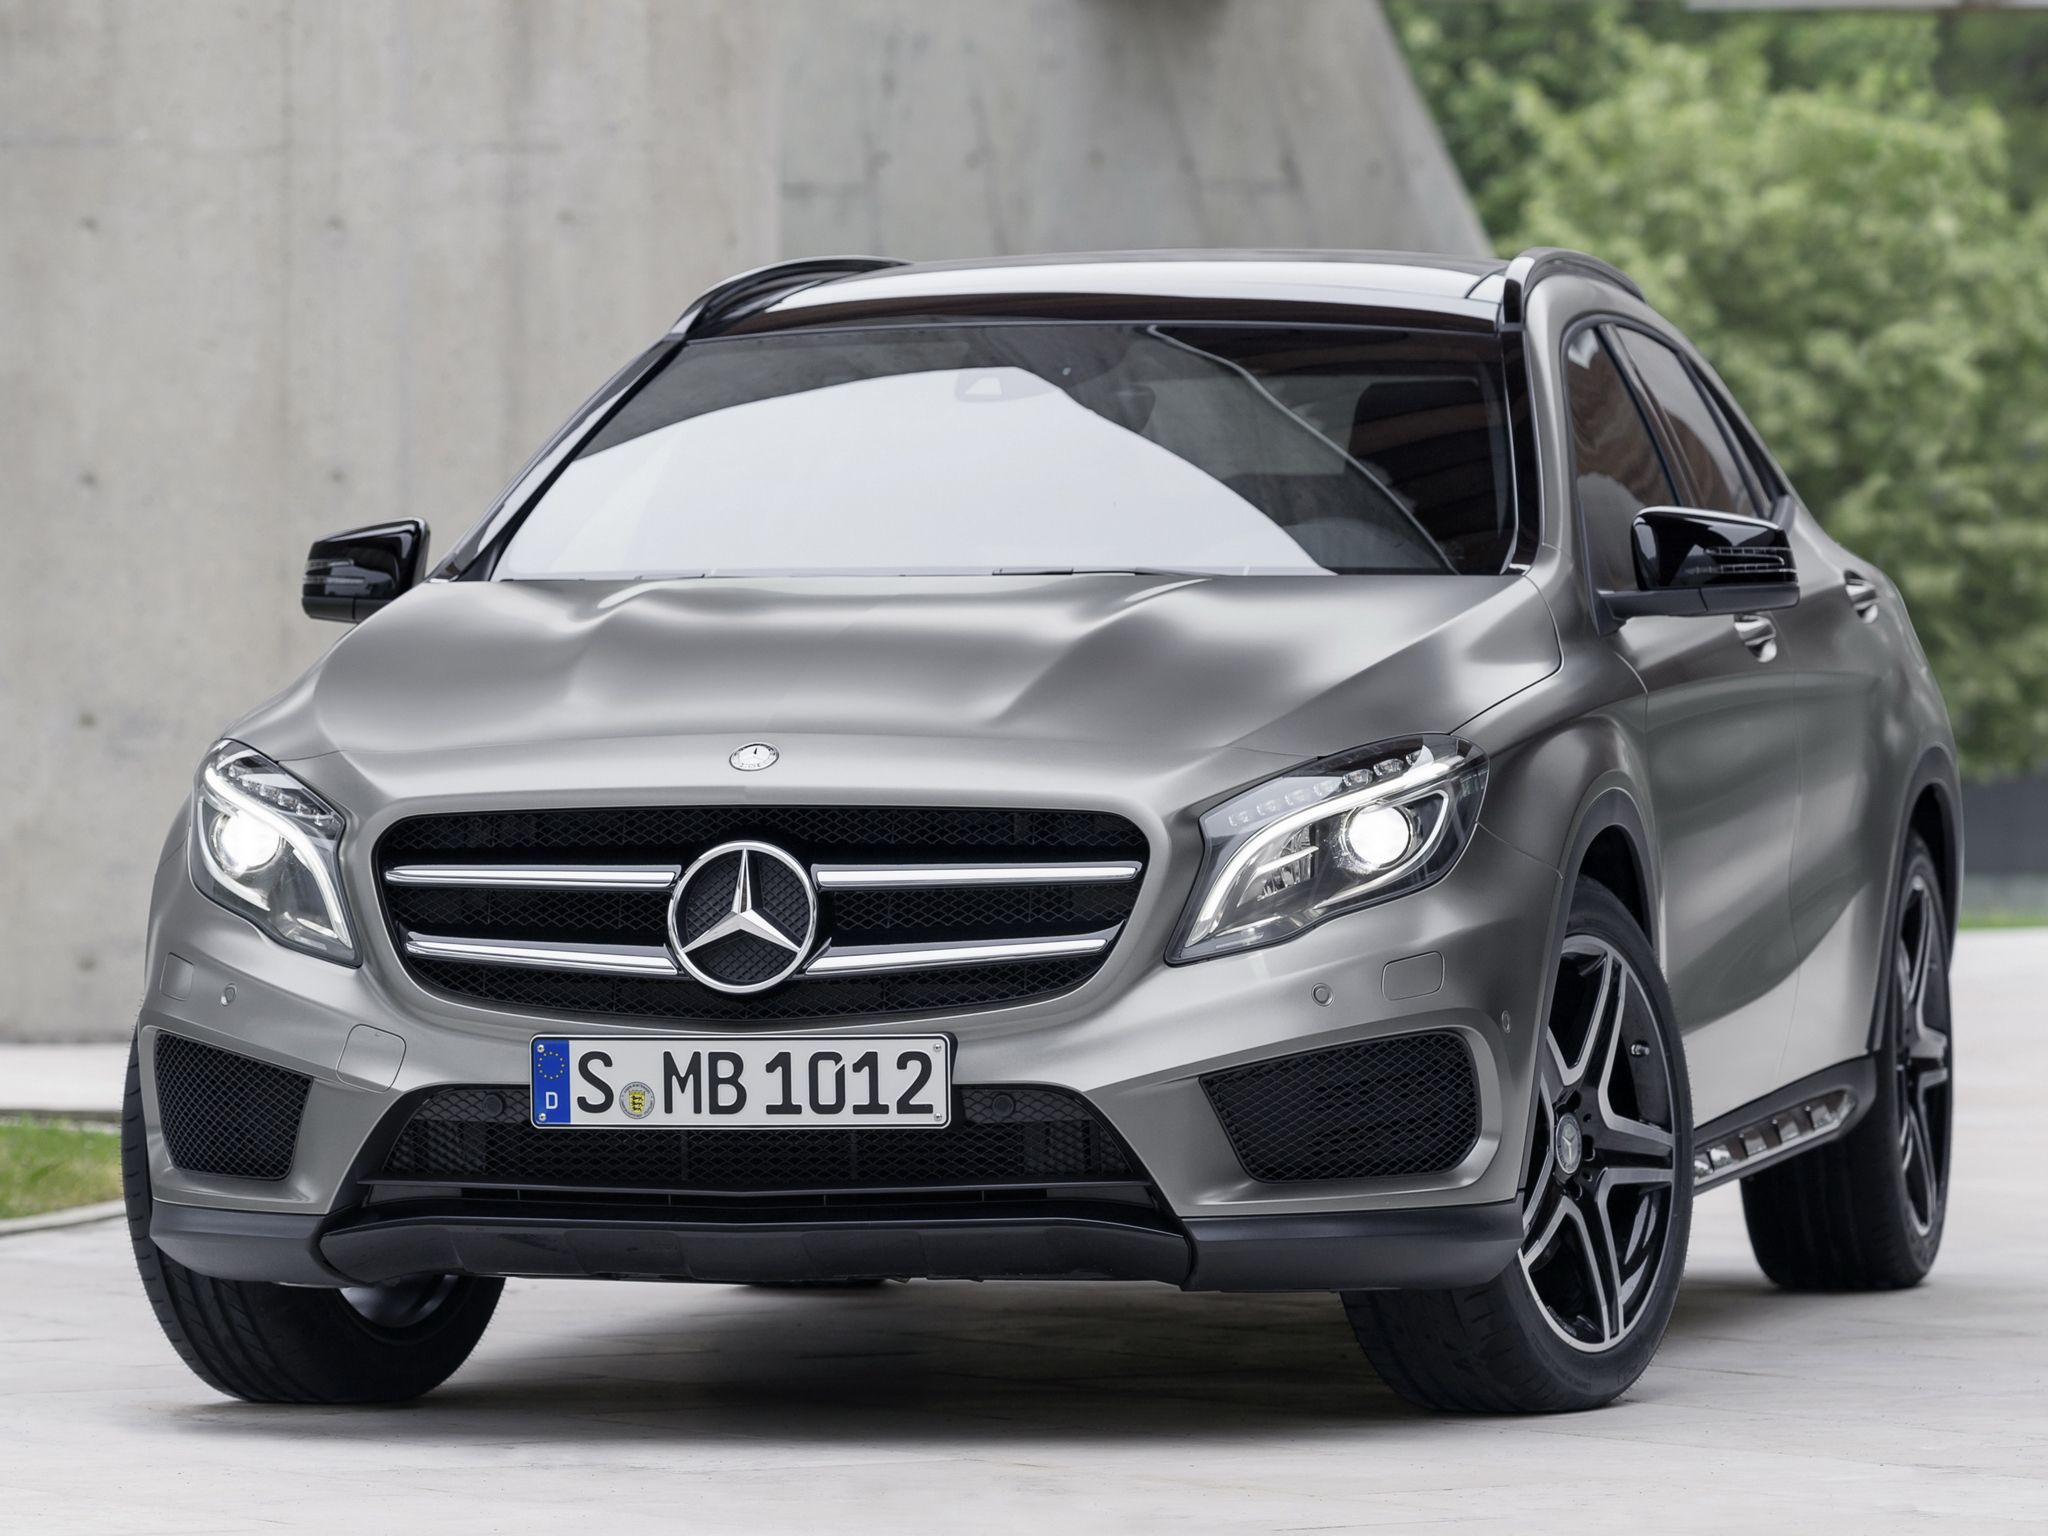 Mercedes Benz Gla 250 Amg 4matic 2014 With Images Mercedes